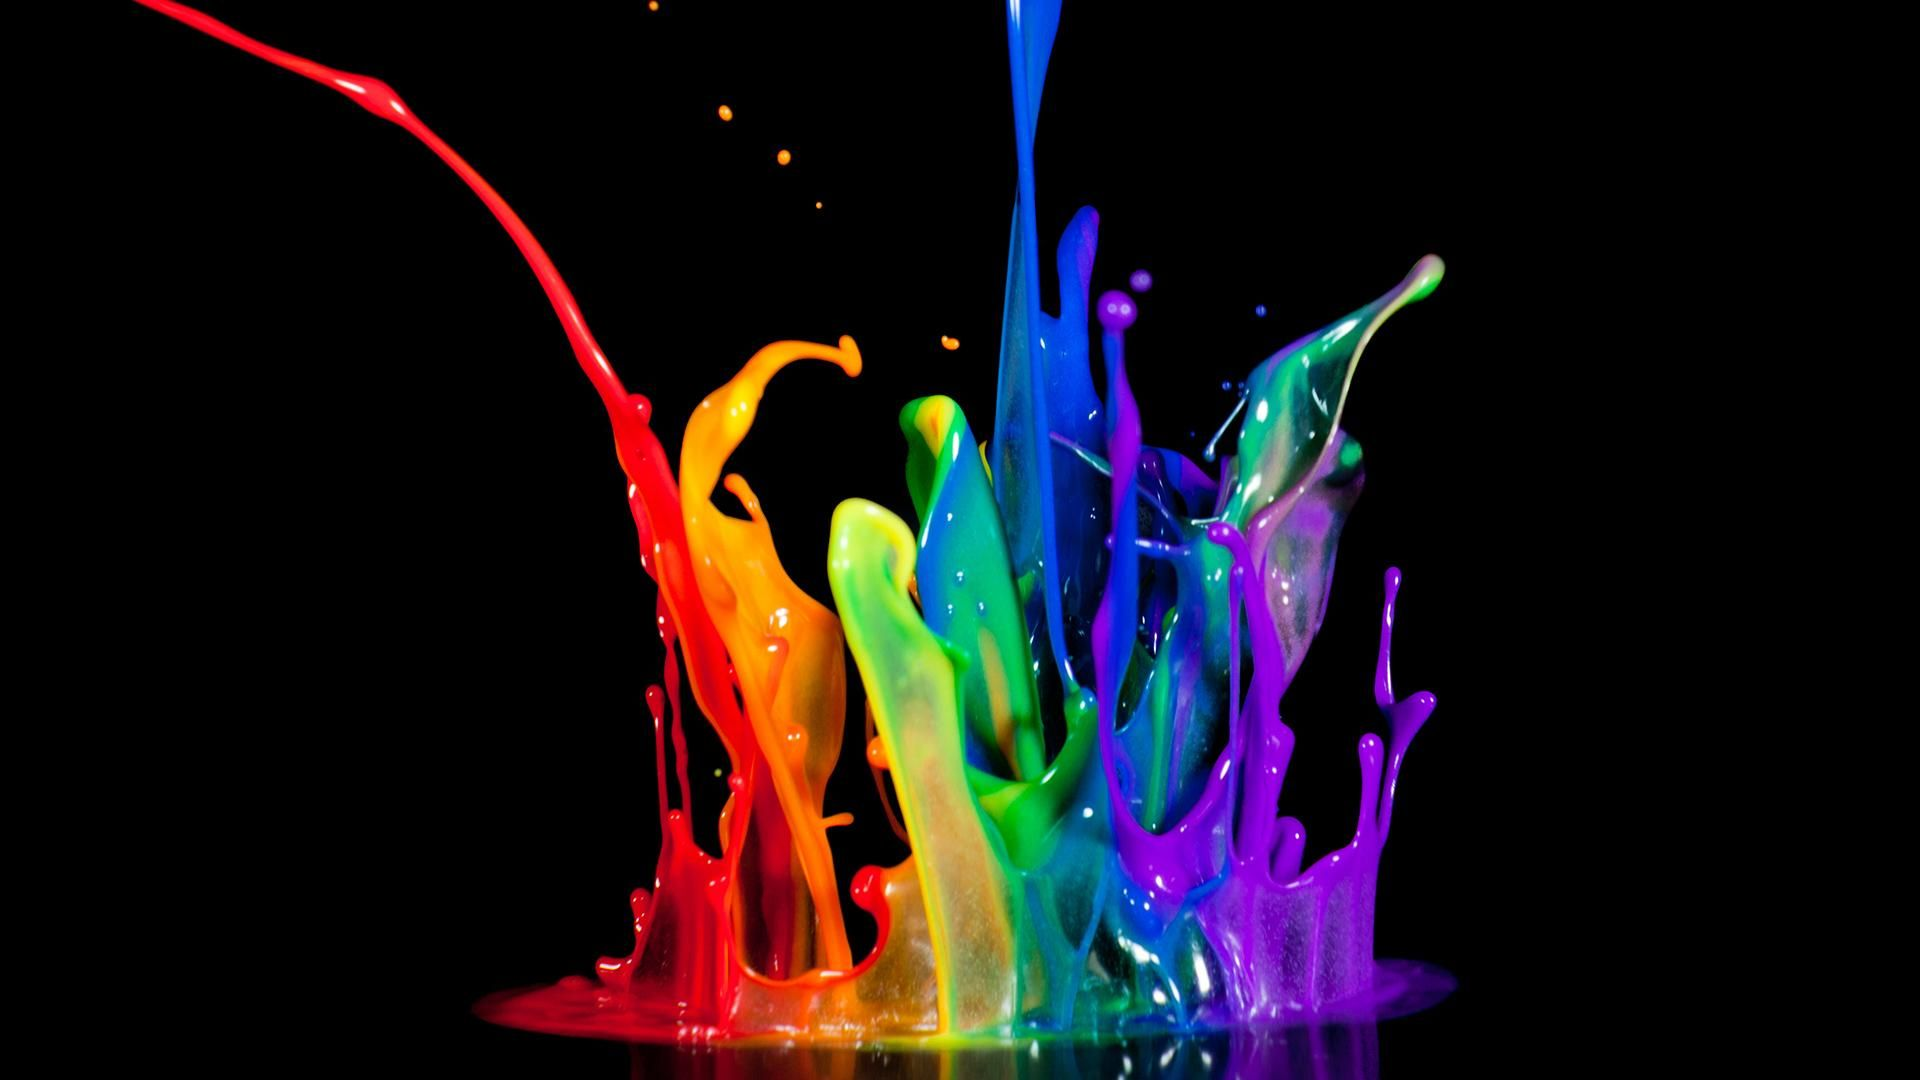 Pin By Jace Burk On Awesome Pics Black Wallpaper Colorful Wallpaper Cool Pictures